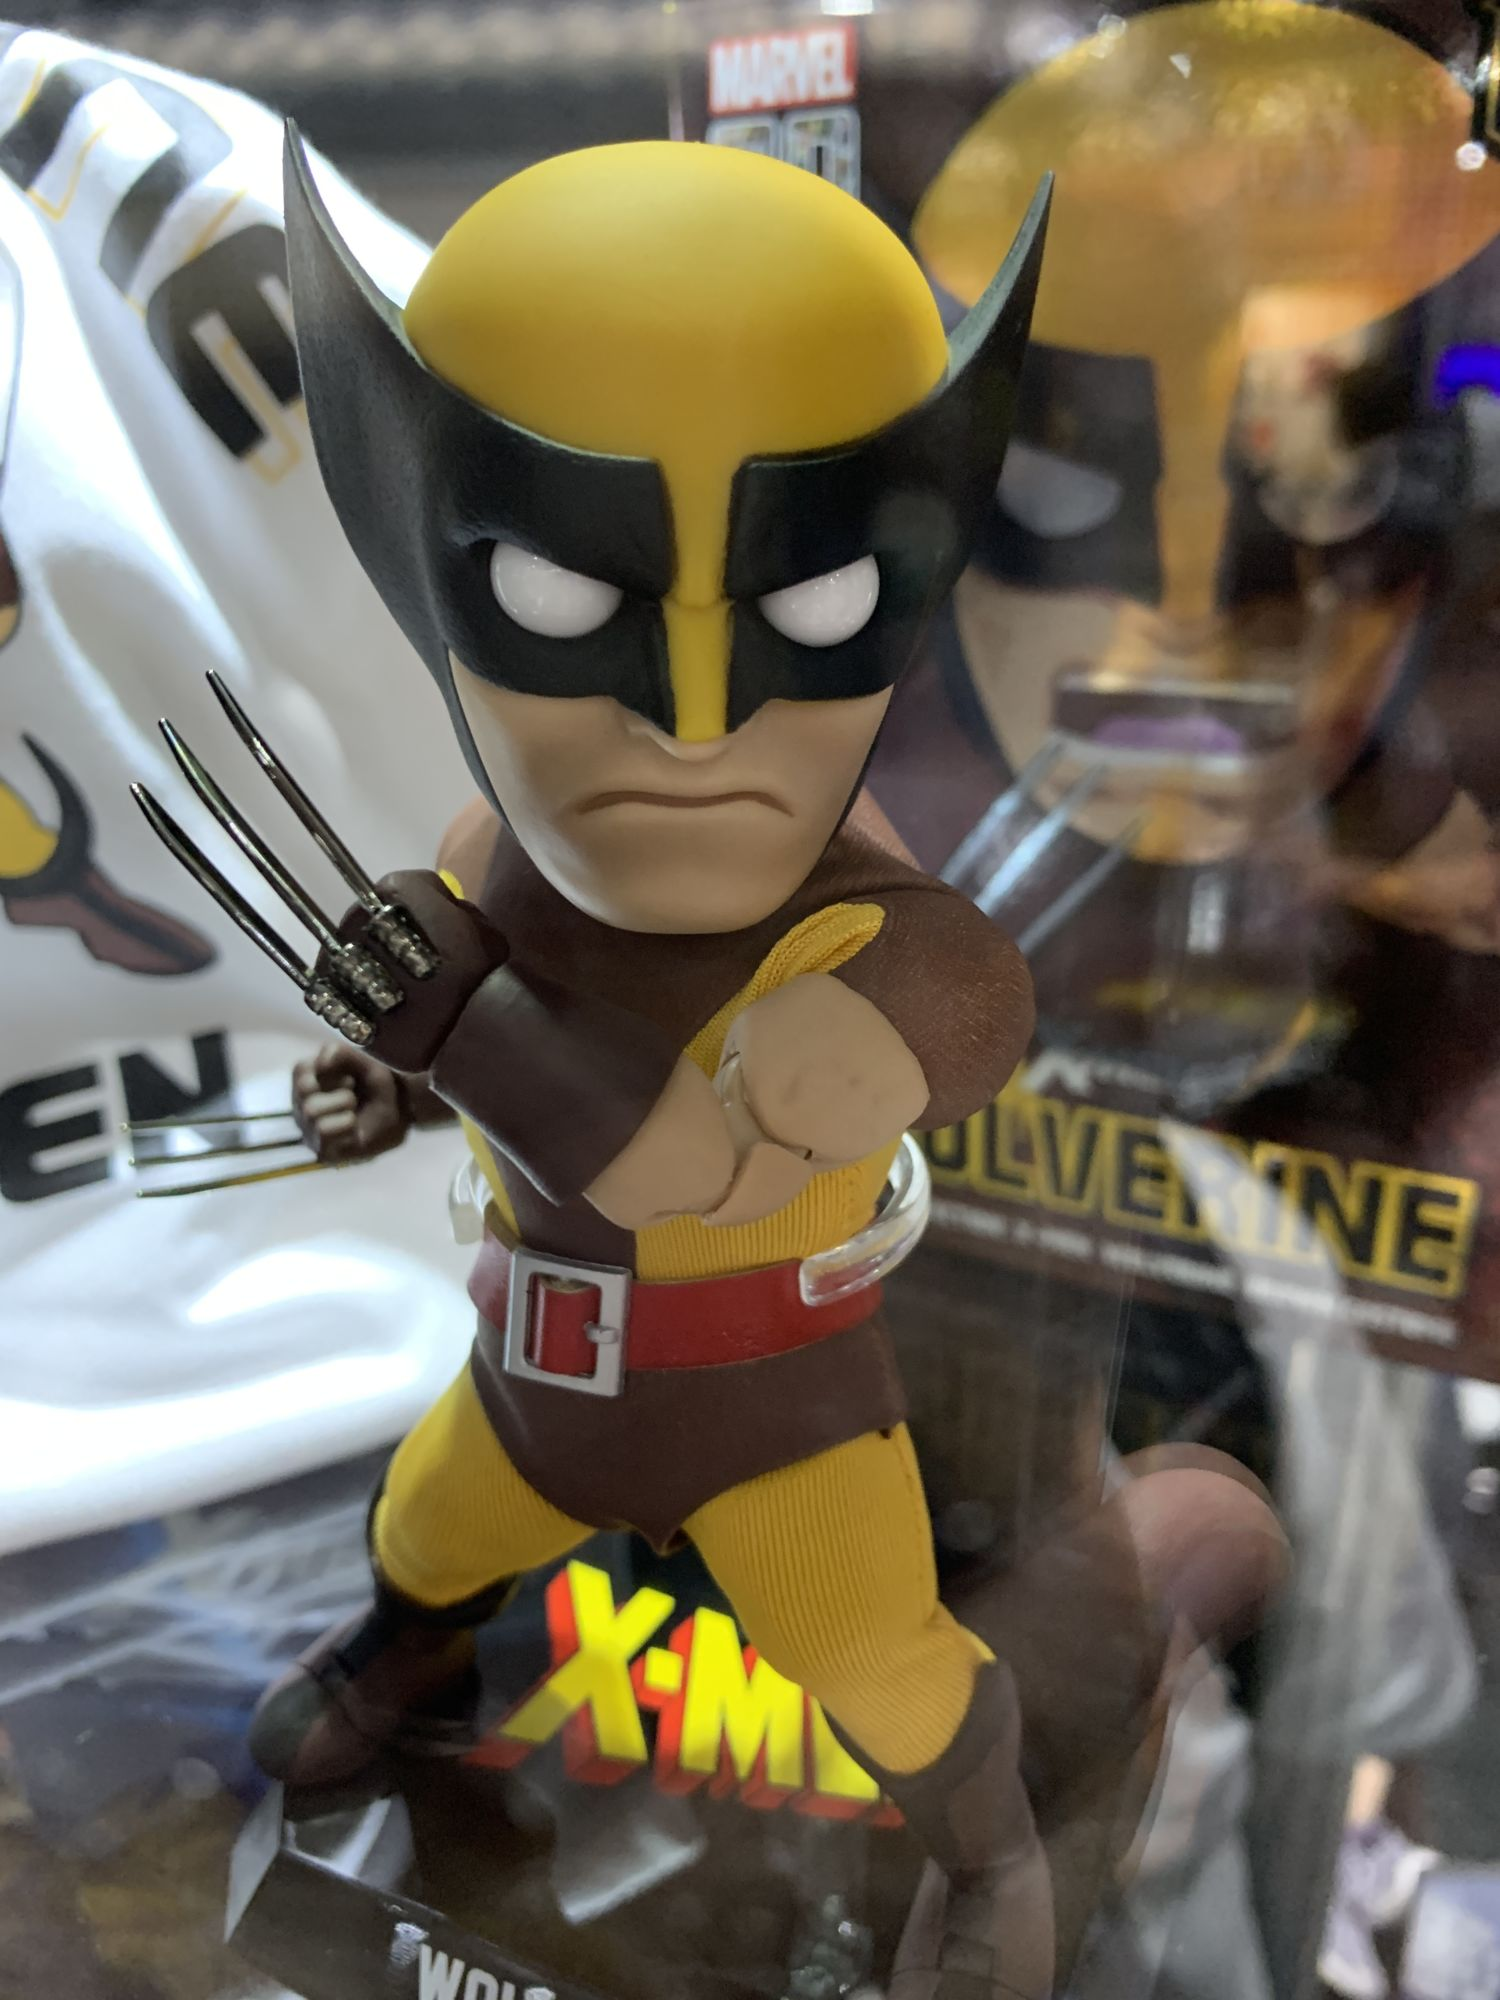 SDCC 2019: 30+ Pics From the Beast Kingdom Booth